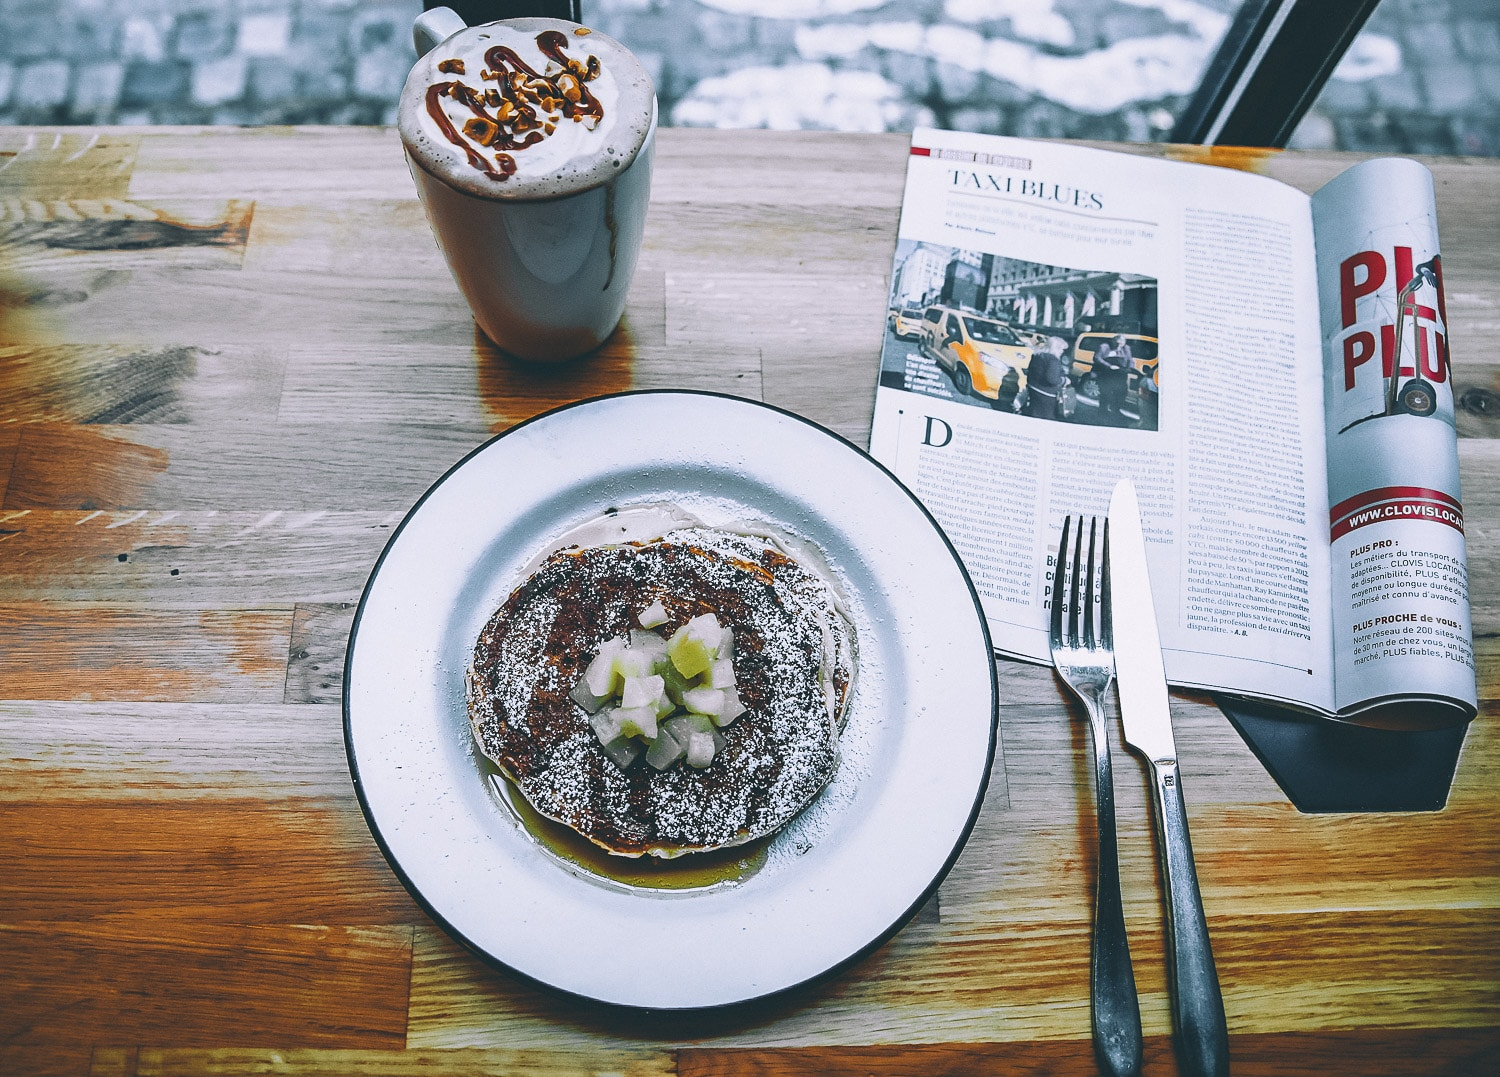 frenchie-to-paris-pancakes-compotee-de-fruit-1 Envie d'un brunch à Paris ? Mes adresses favorites !